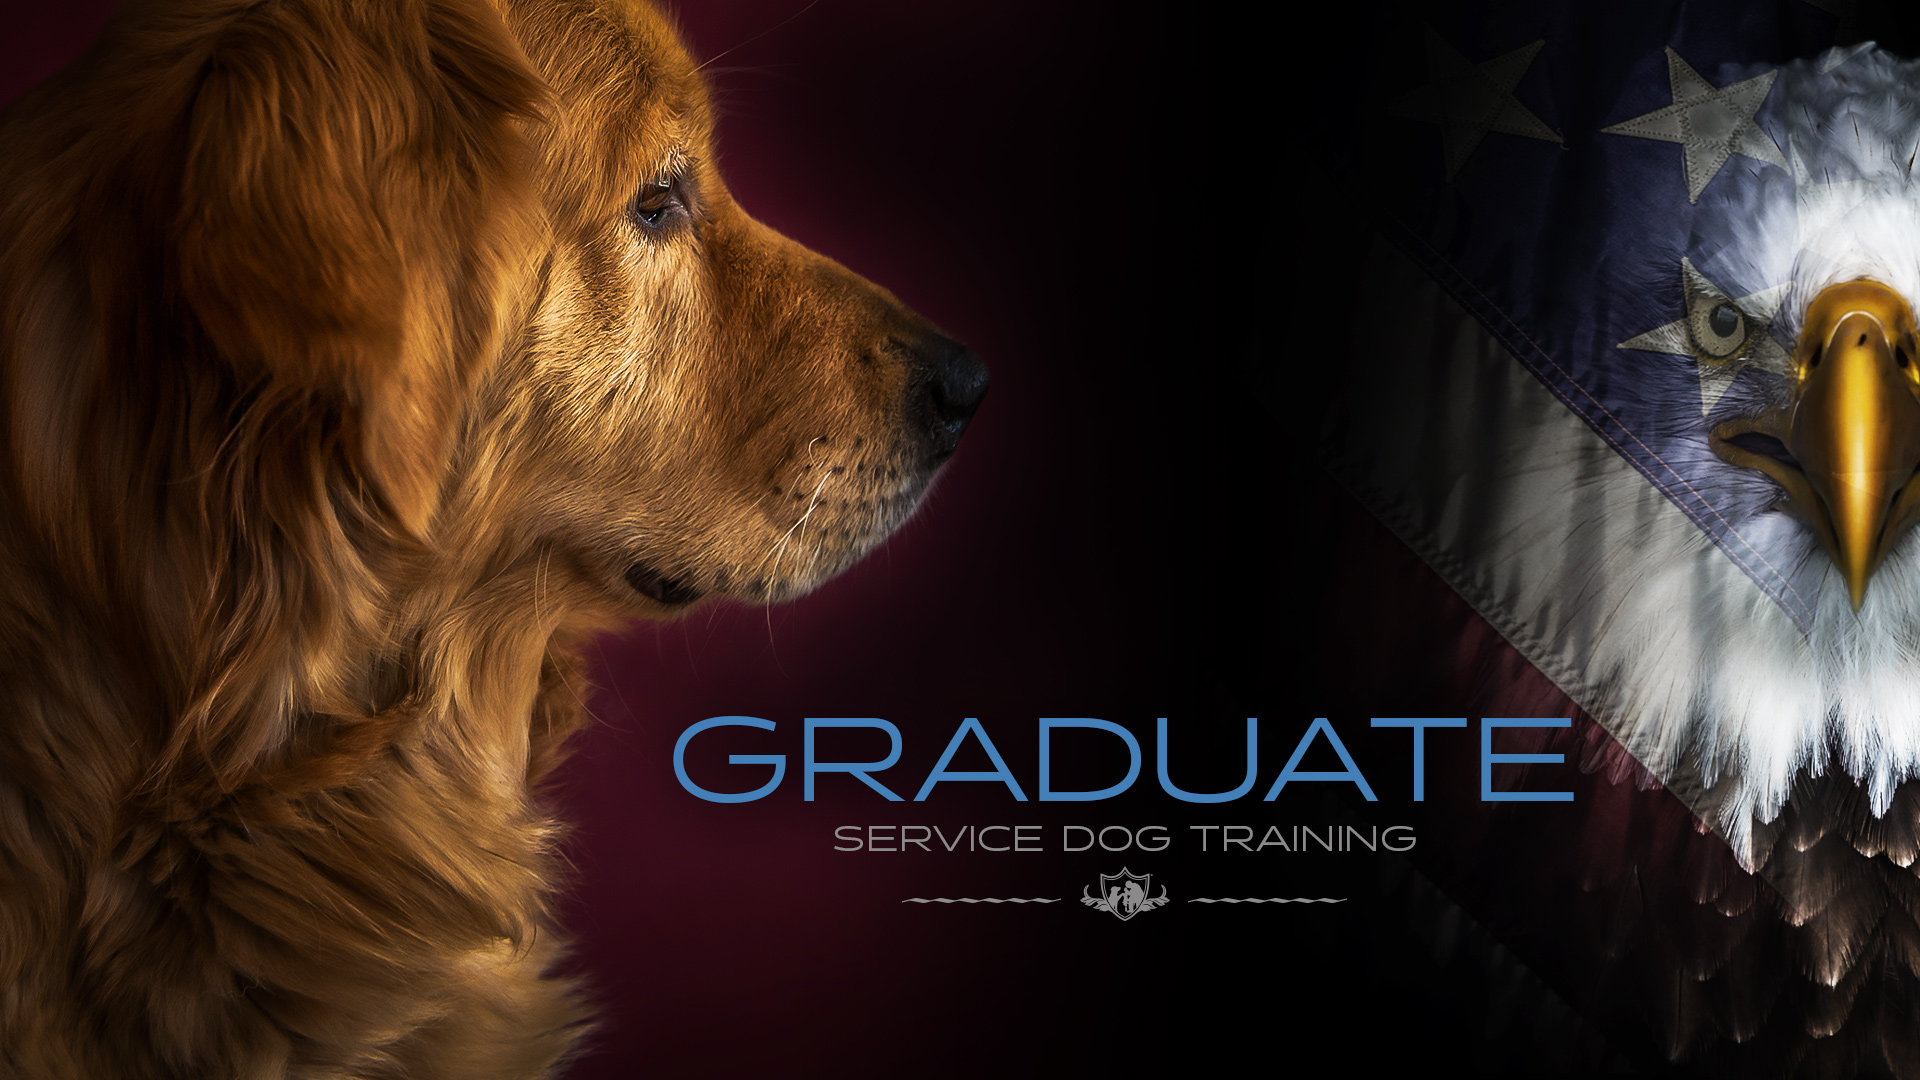 Service dog training 101: everything you need to know.